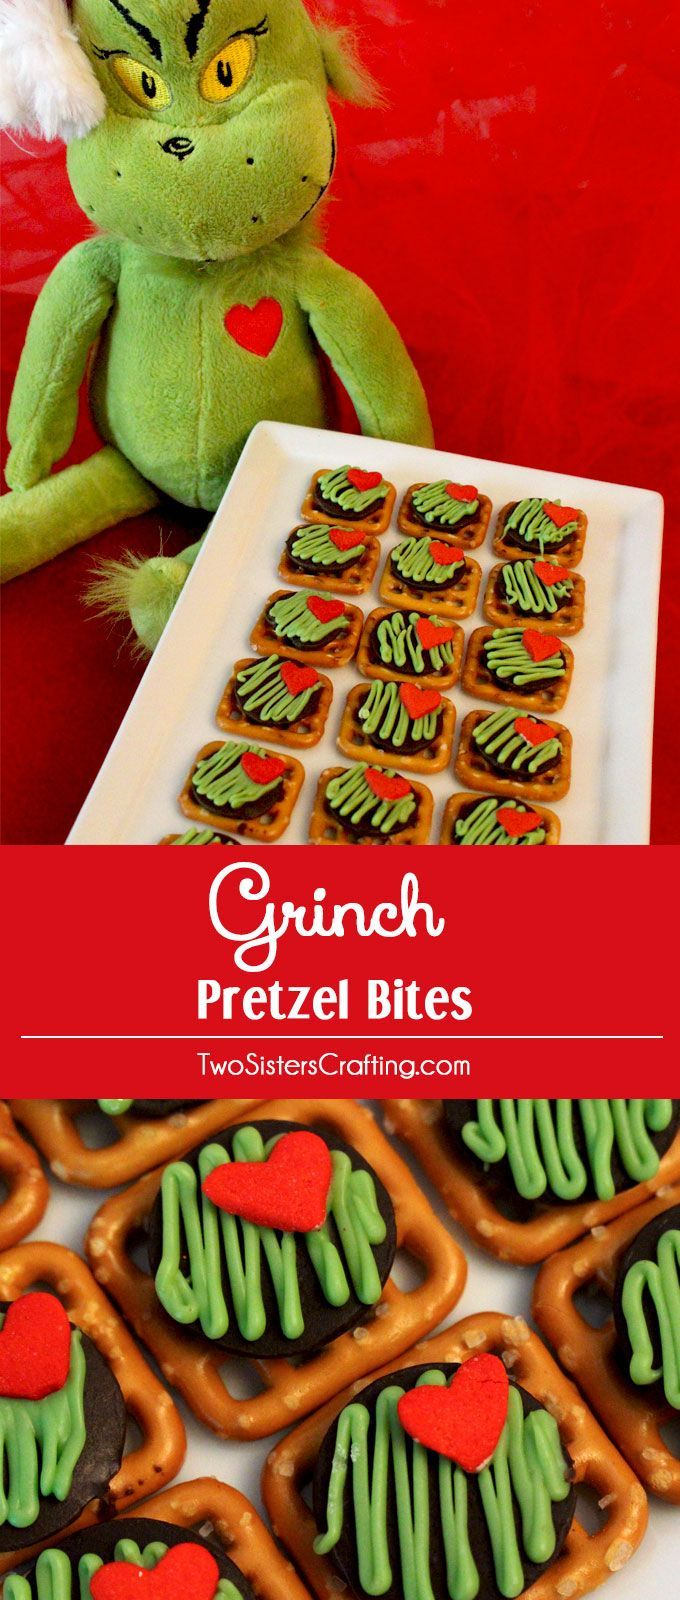 Grinch Pretzel Bites Are Delicious Of Sweet And Salty Goodness A Perfect Christmas Treat